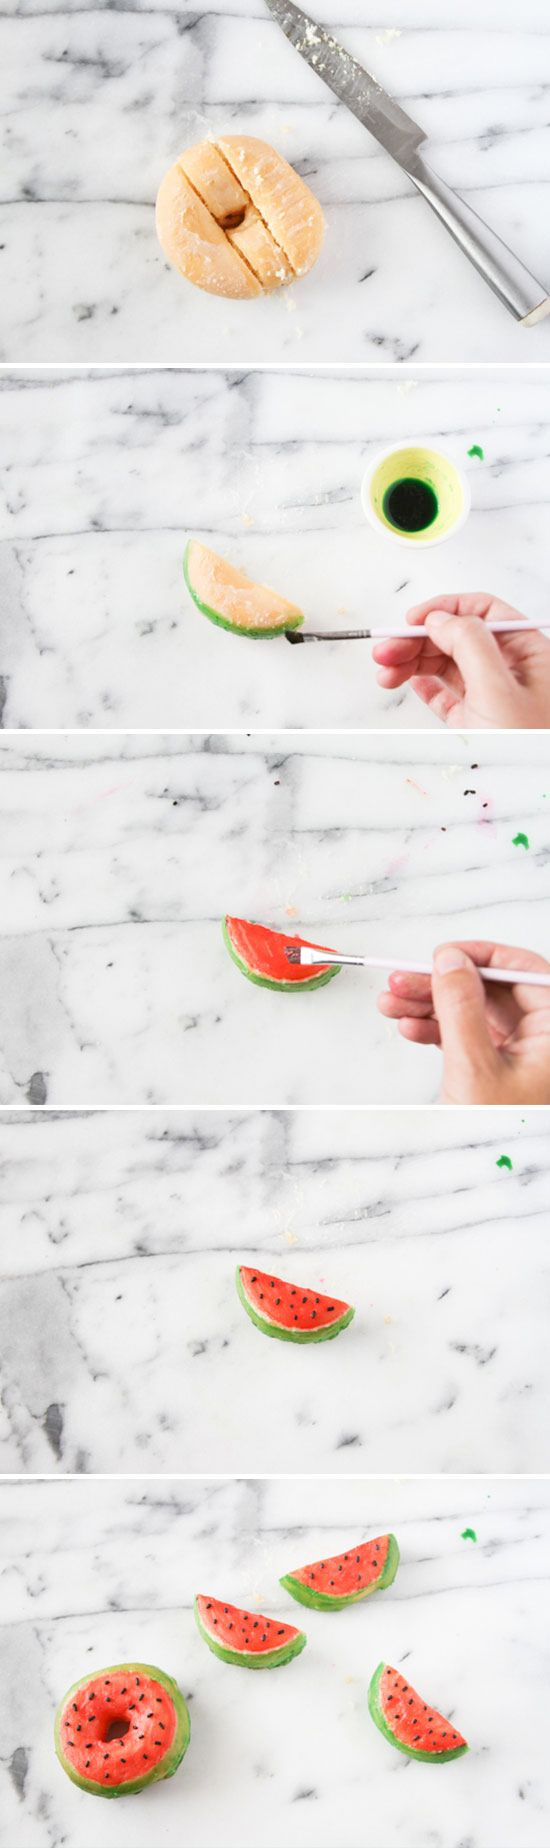 How To Make Watermelon Donuts